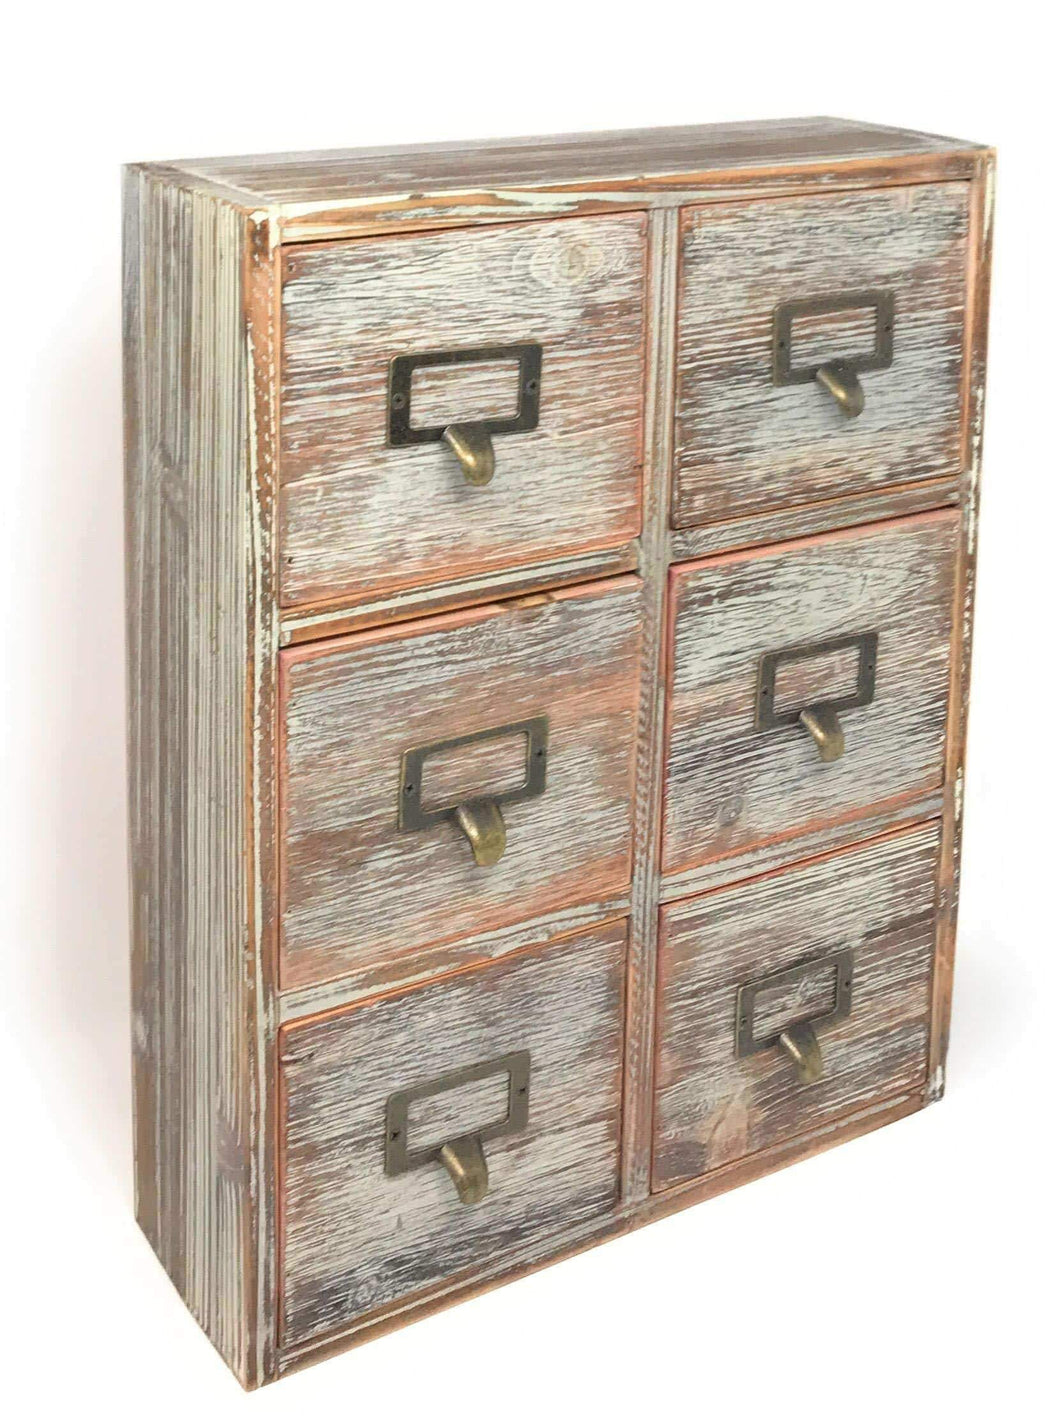 Storage organizer farmhouse decor desk organizer storage cabinet bathroom home shelves kitchen living room bedroom furniture apothecary drawers rustic wood distressed finish